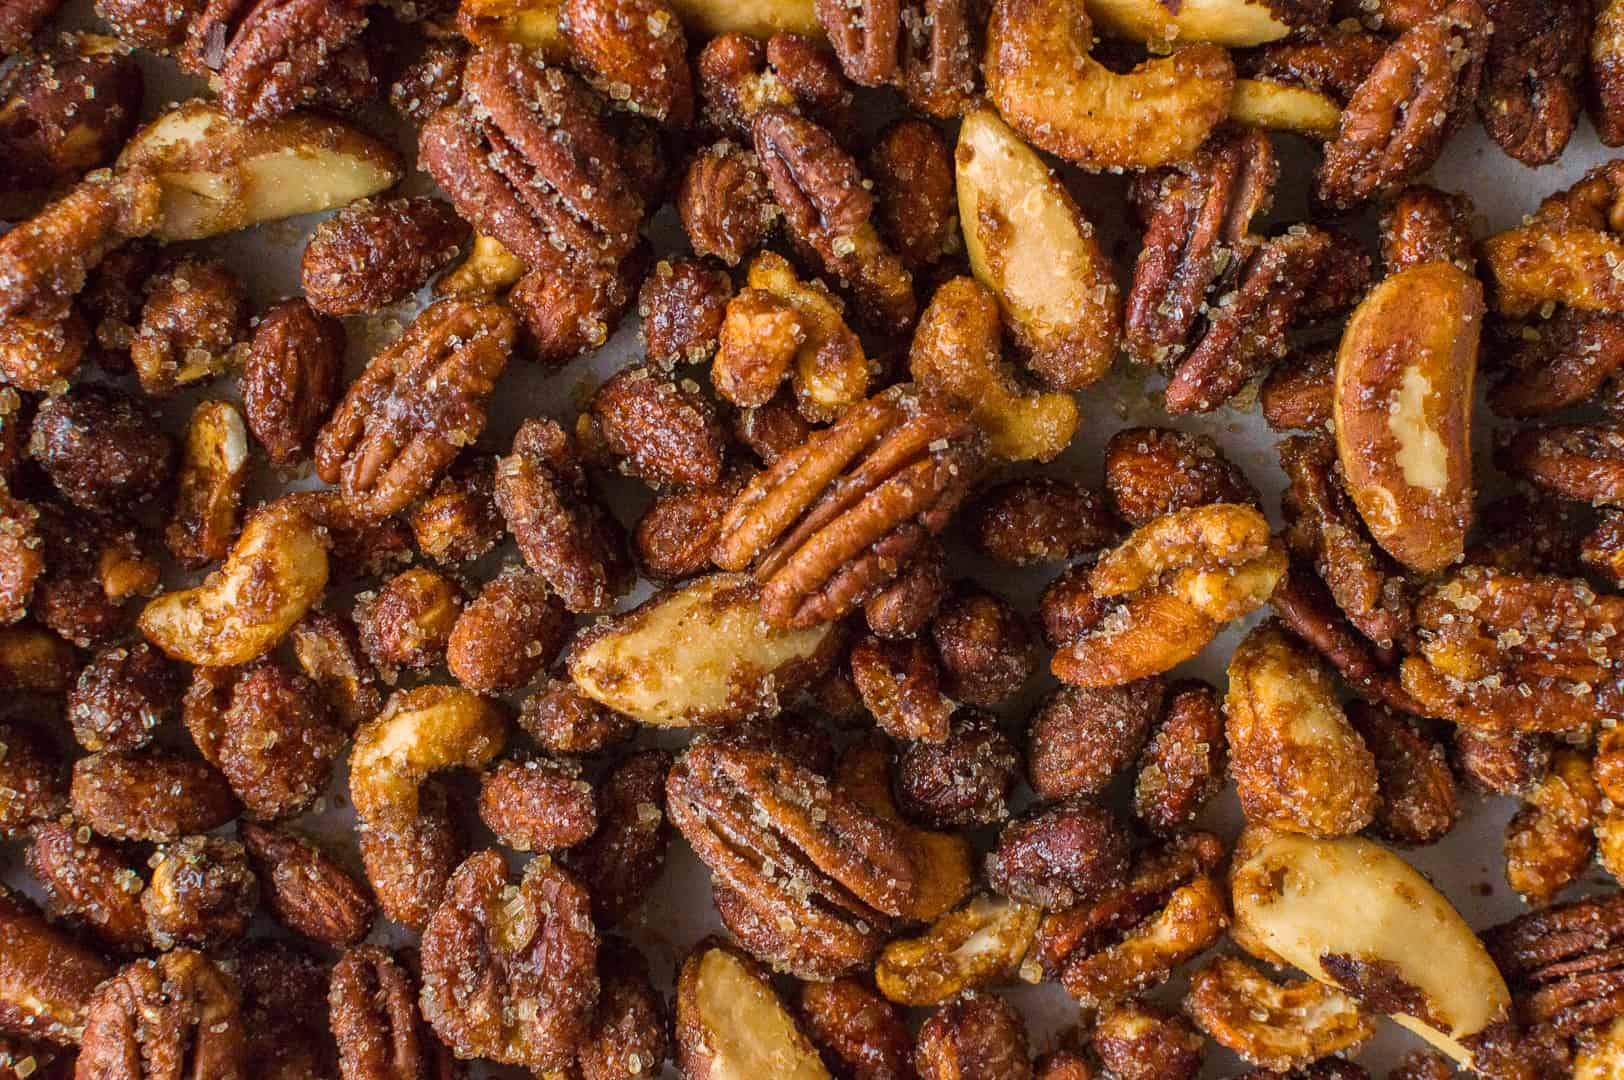 Close up of golden, sugar encrusted roasted pecans, cashews, brazil nuts, almonds and hazelnuts.